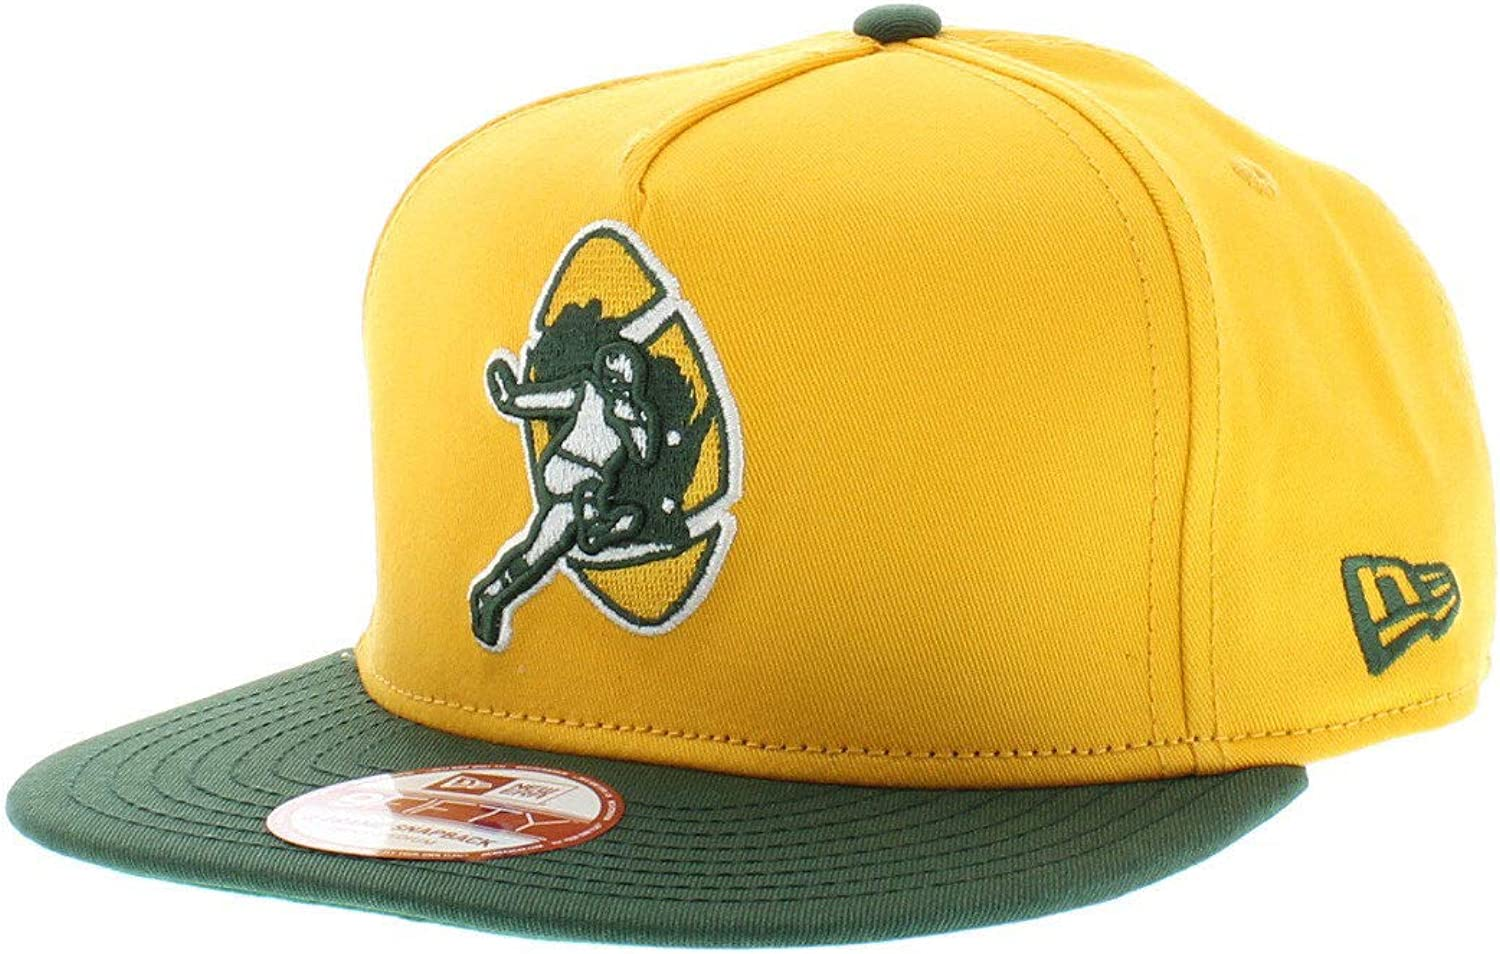 Era Green Bay Packers Heritage Series Retro Wool Fitted Hat (Size 7 1 8)